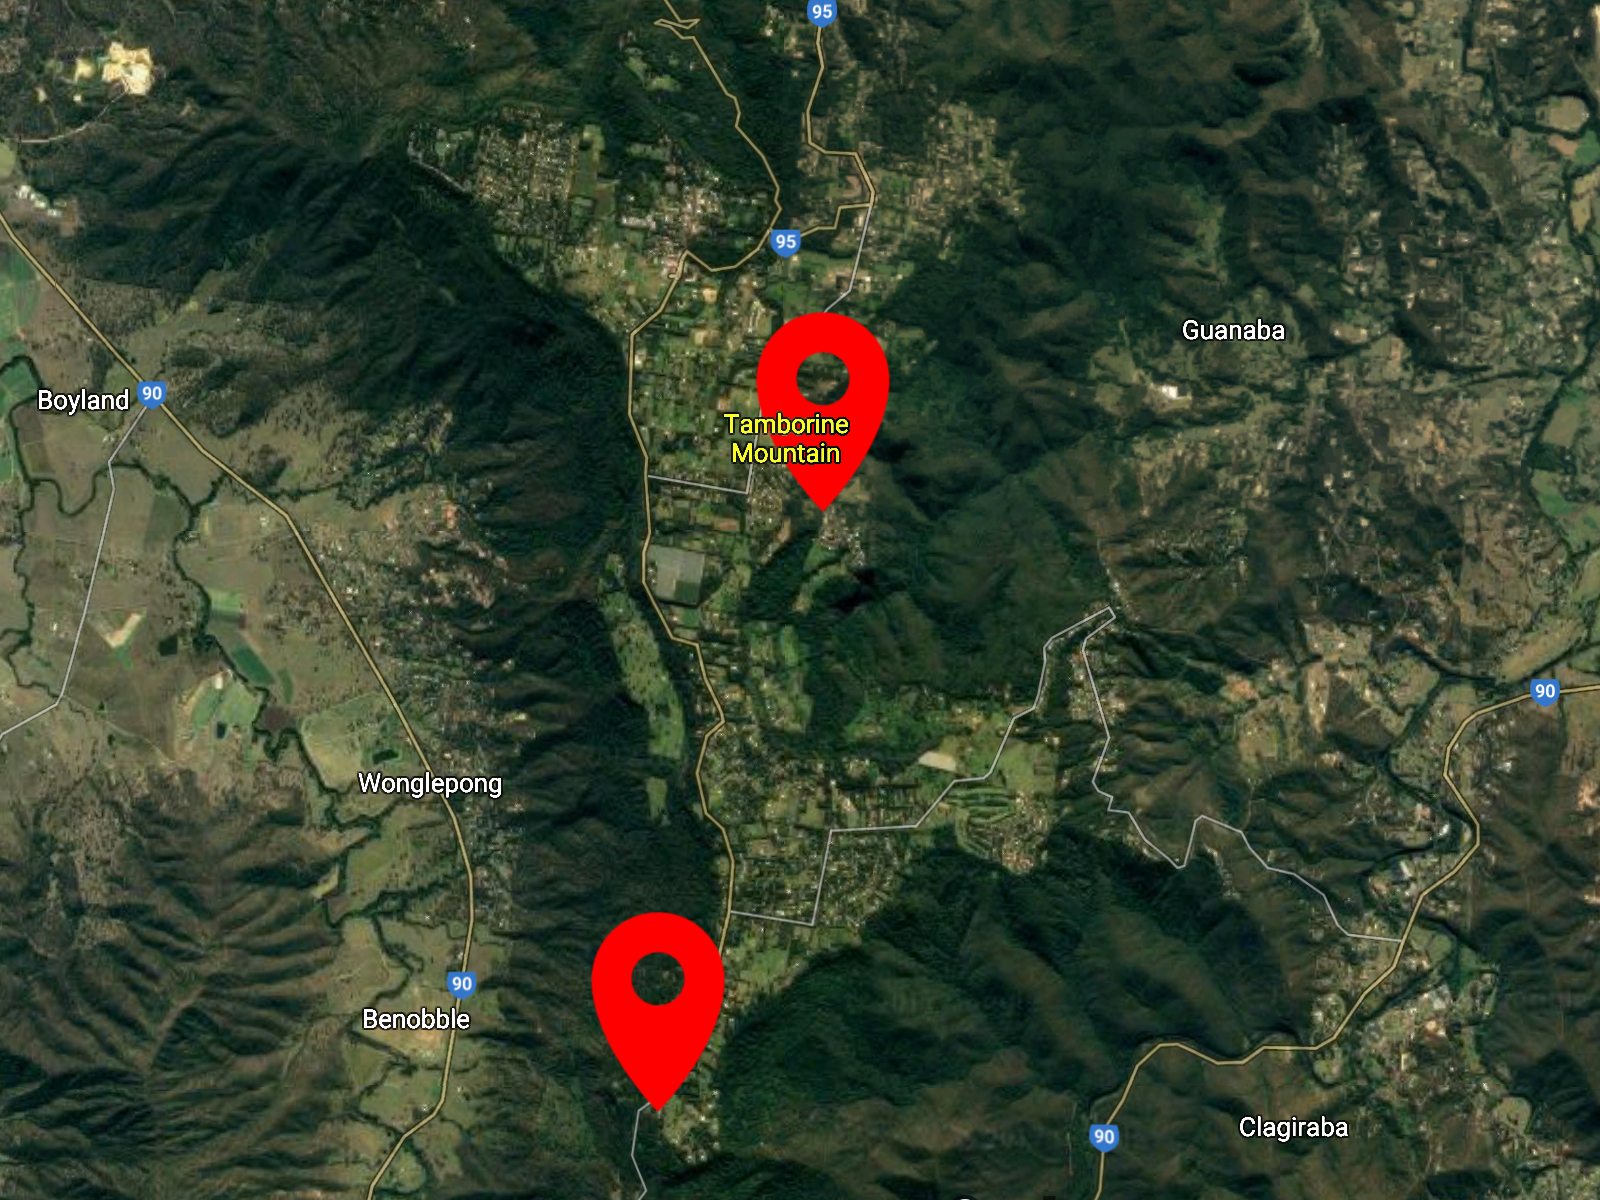 Tamborine Mountain Clickable Map